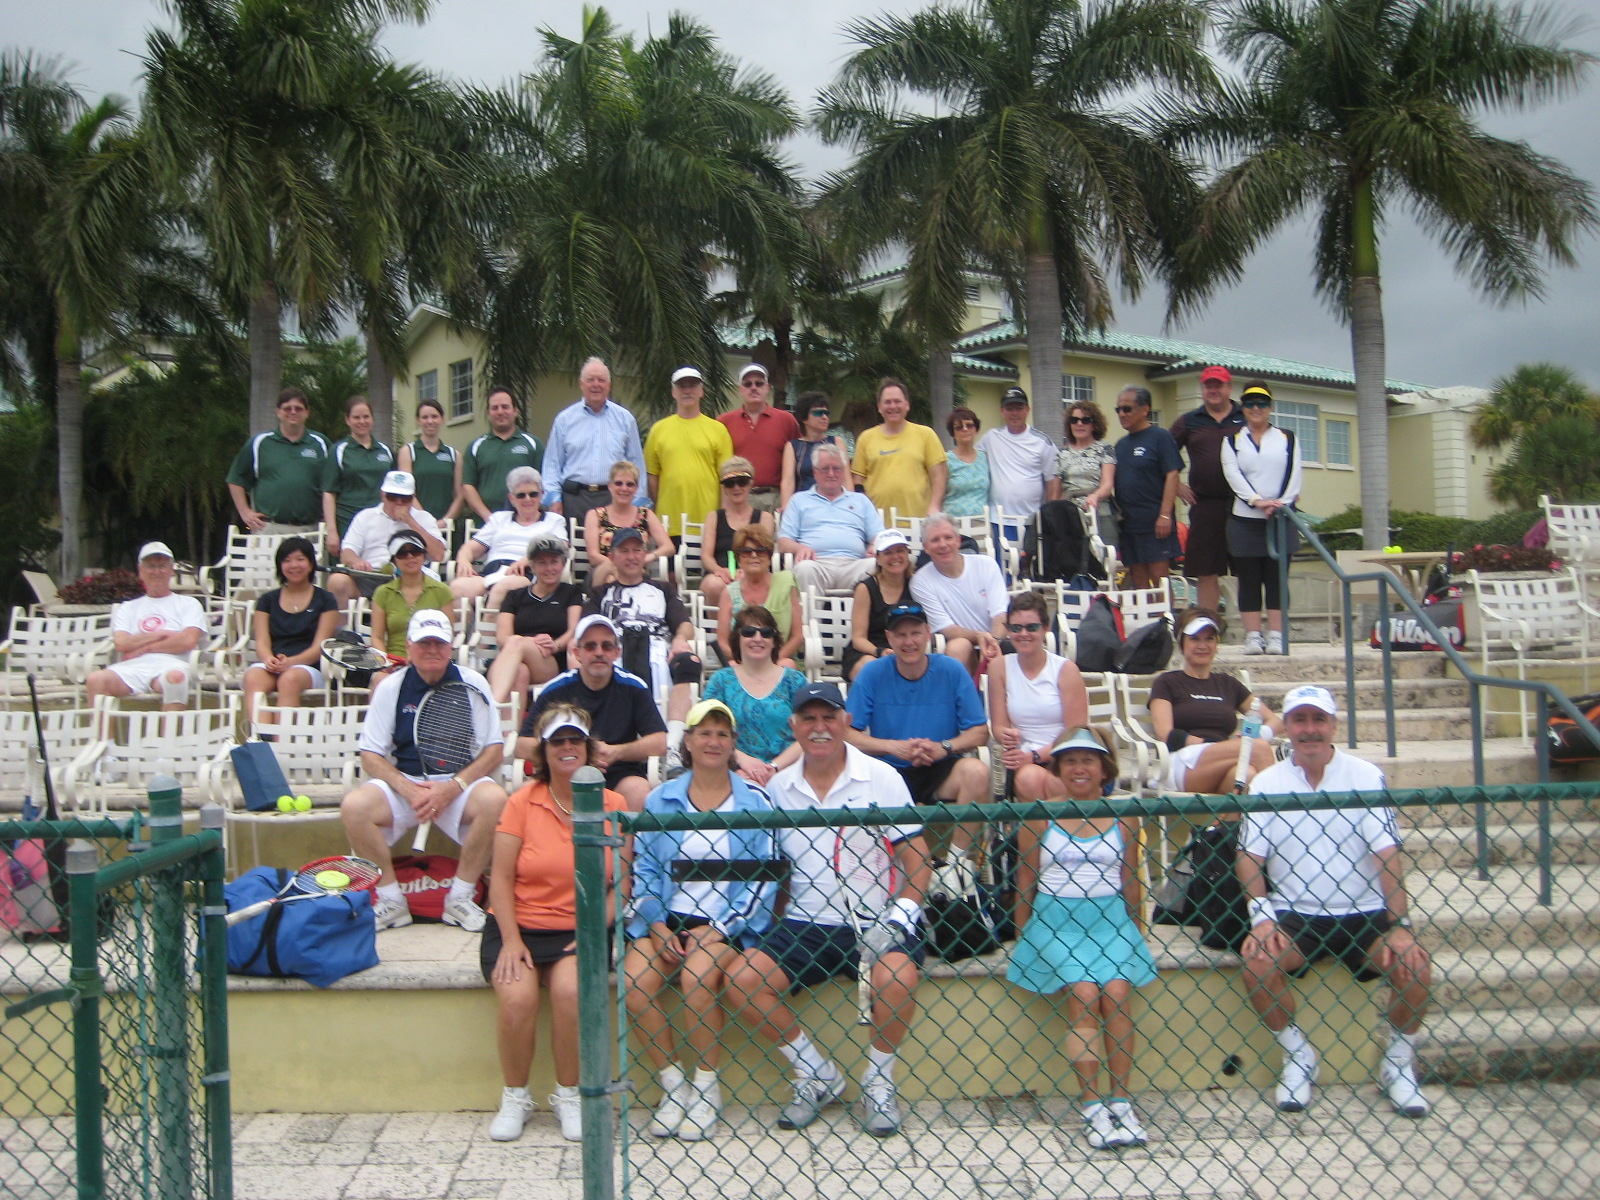 Tennis Cruise participants